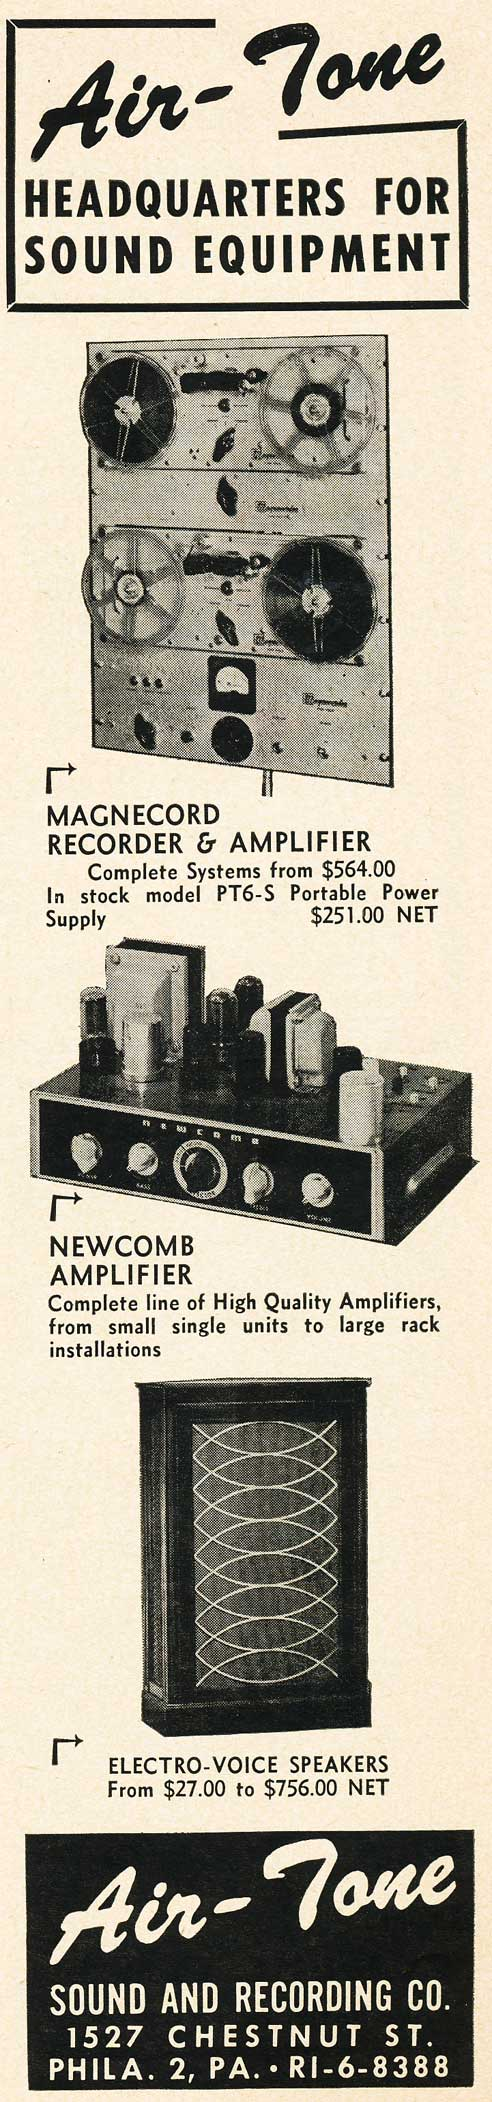 1951 AirTone ad advertising Magnecord recorders in Reel2ReelTexas.com's vintage recording collection